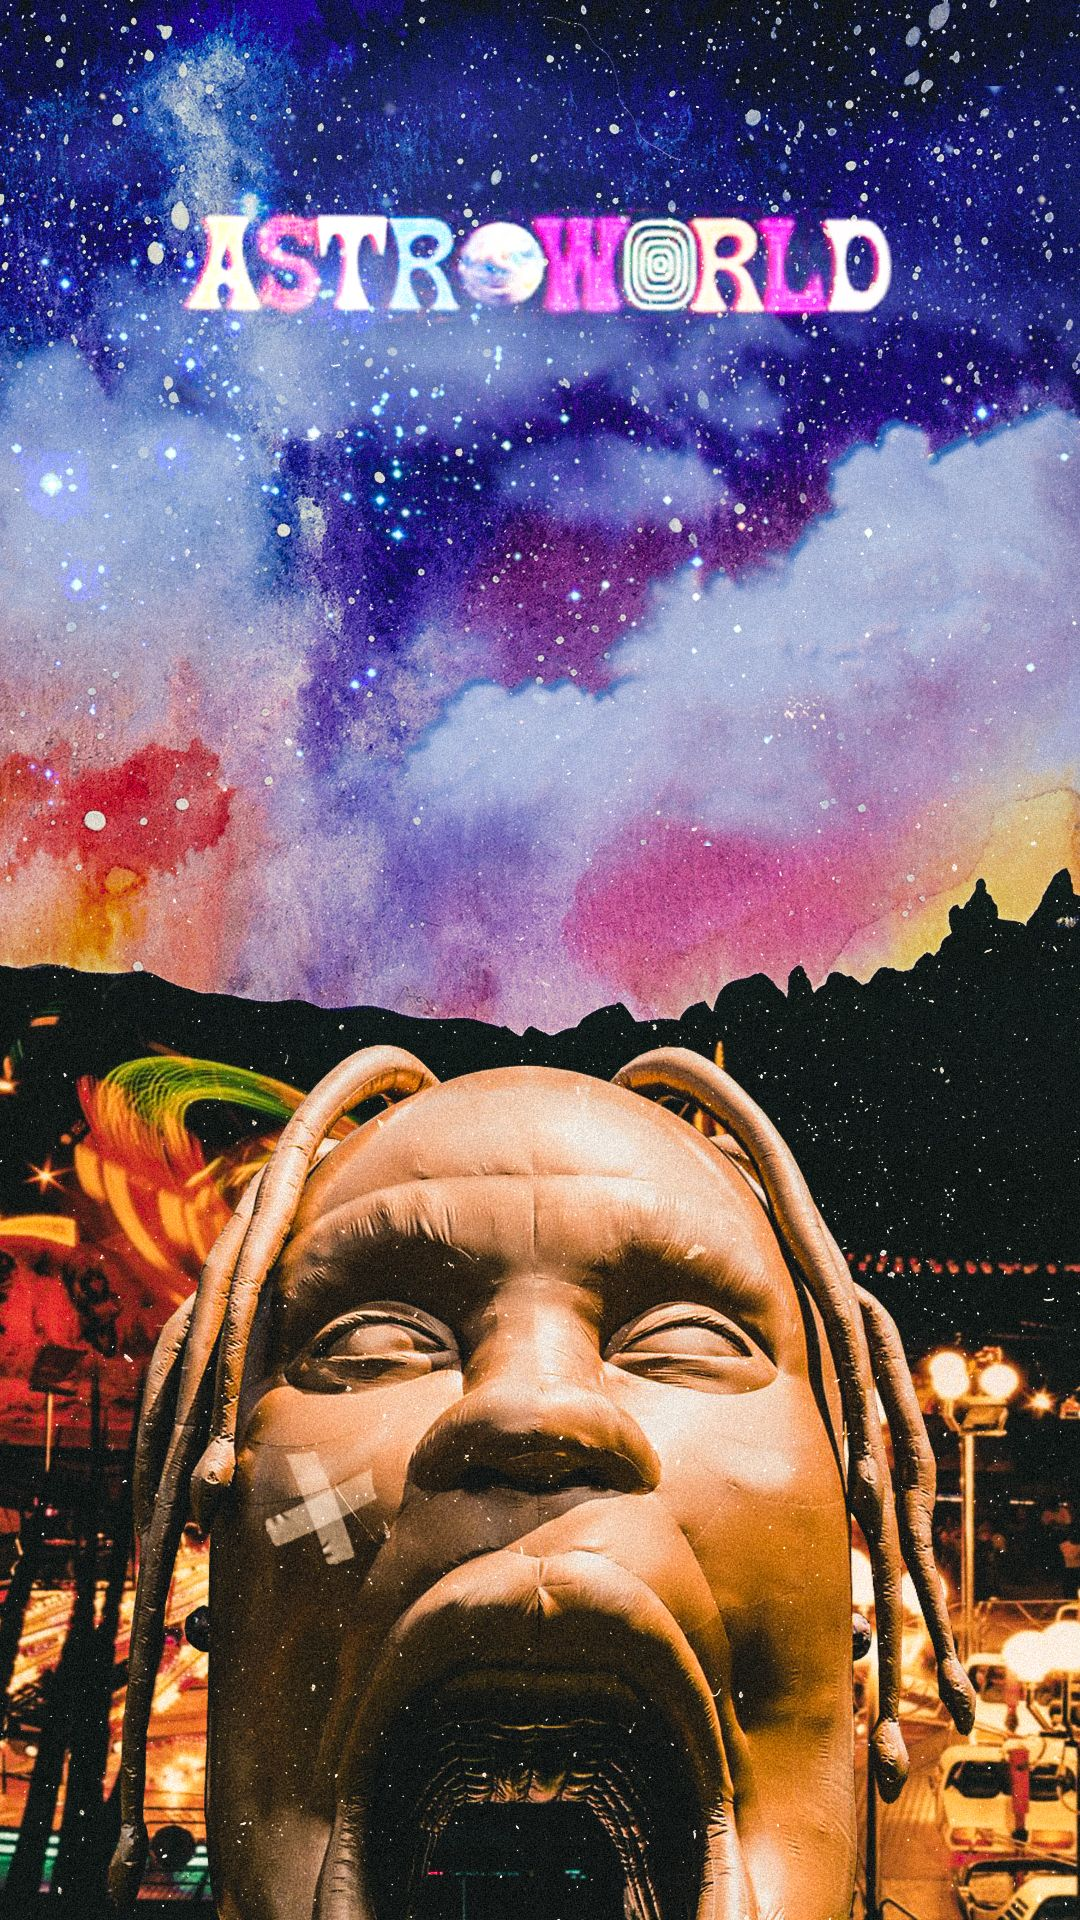 d7139de8aa74 Find this Pin and more on travis scott by Fred Mate. Astroworld wallpaper